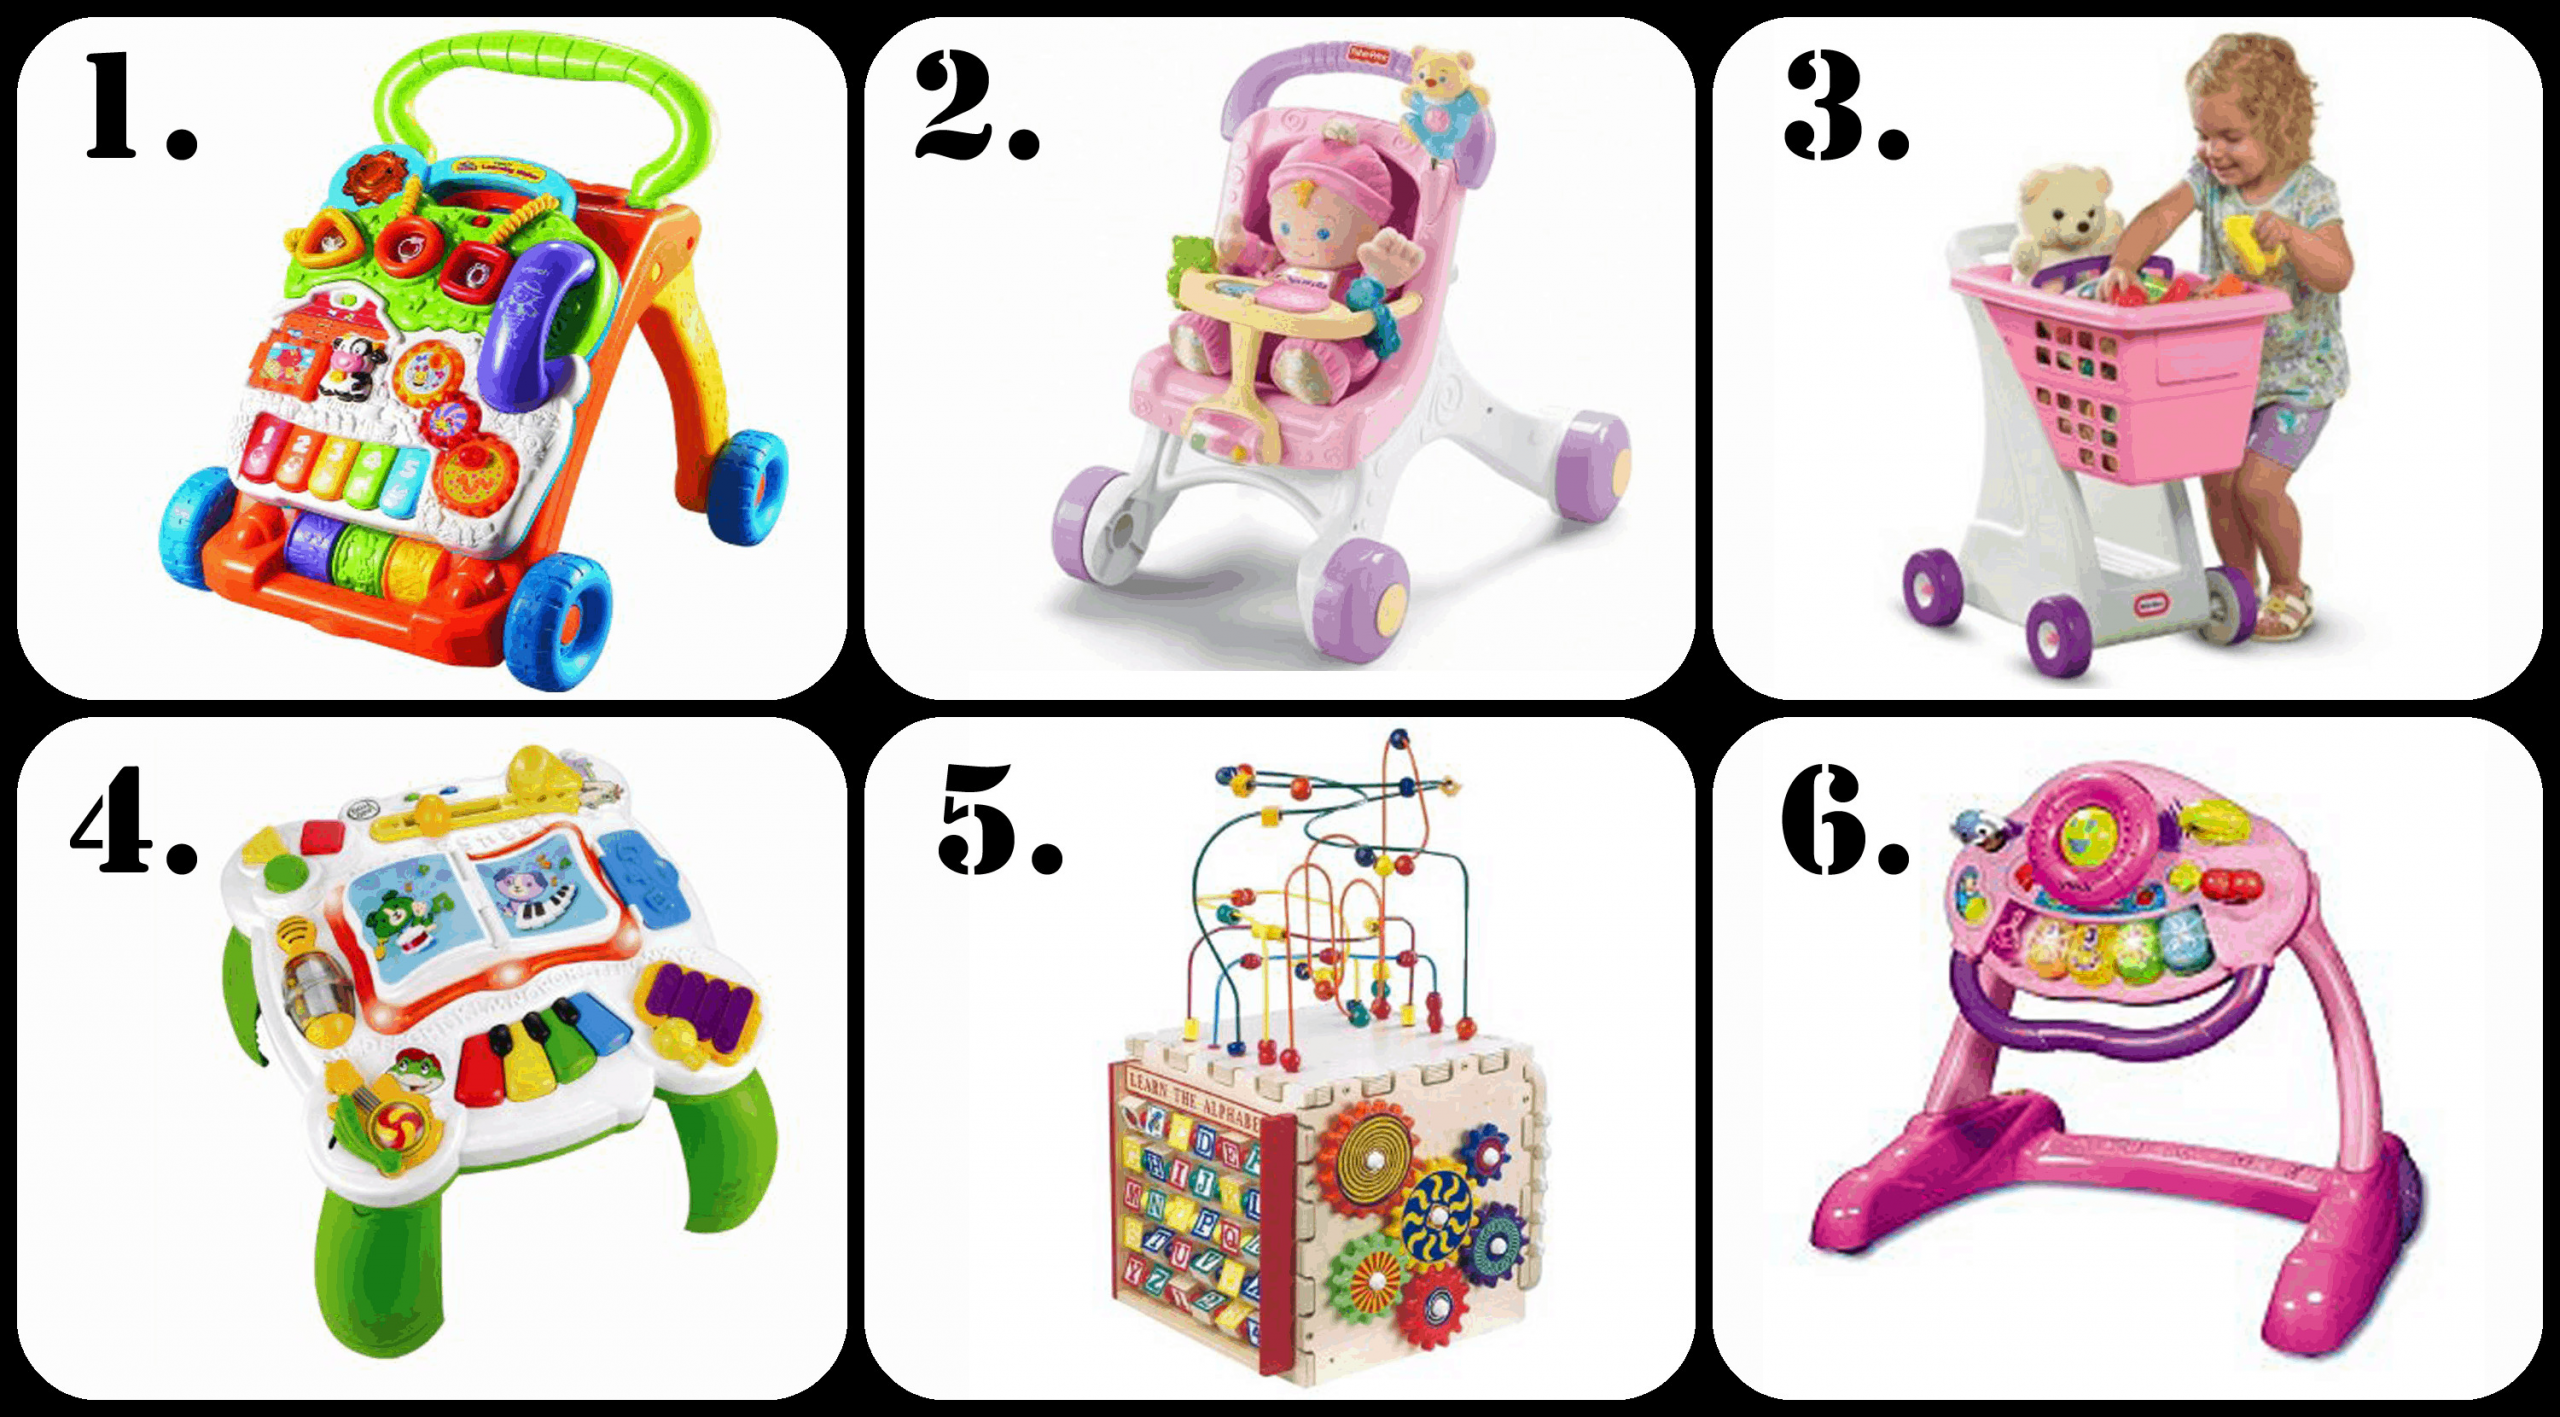 1 Yr Old Girl Birthday Gift Ideas  The Ultimate List of Gift Ideas for a 1 Year Old Girl